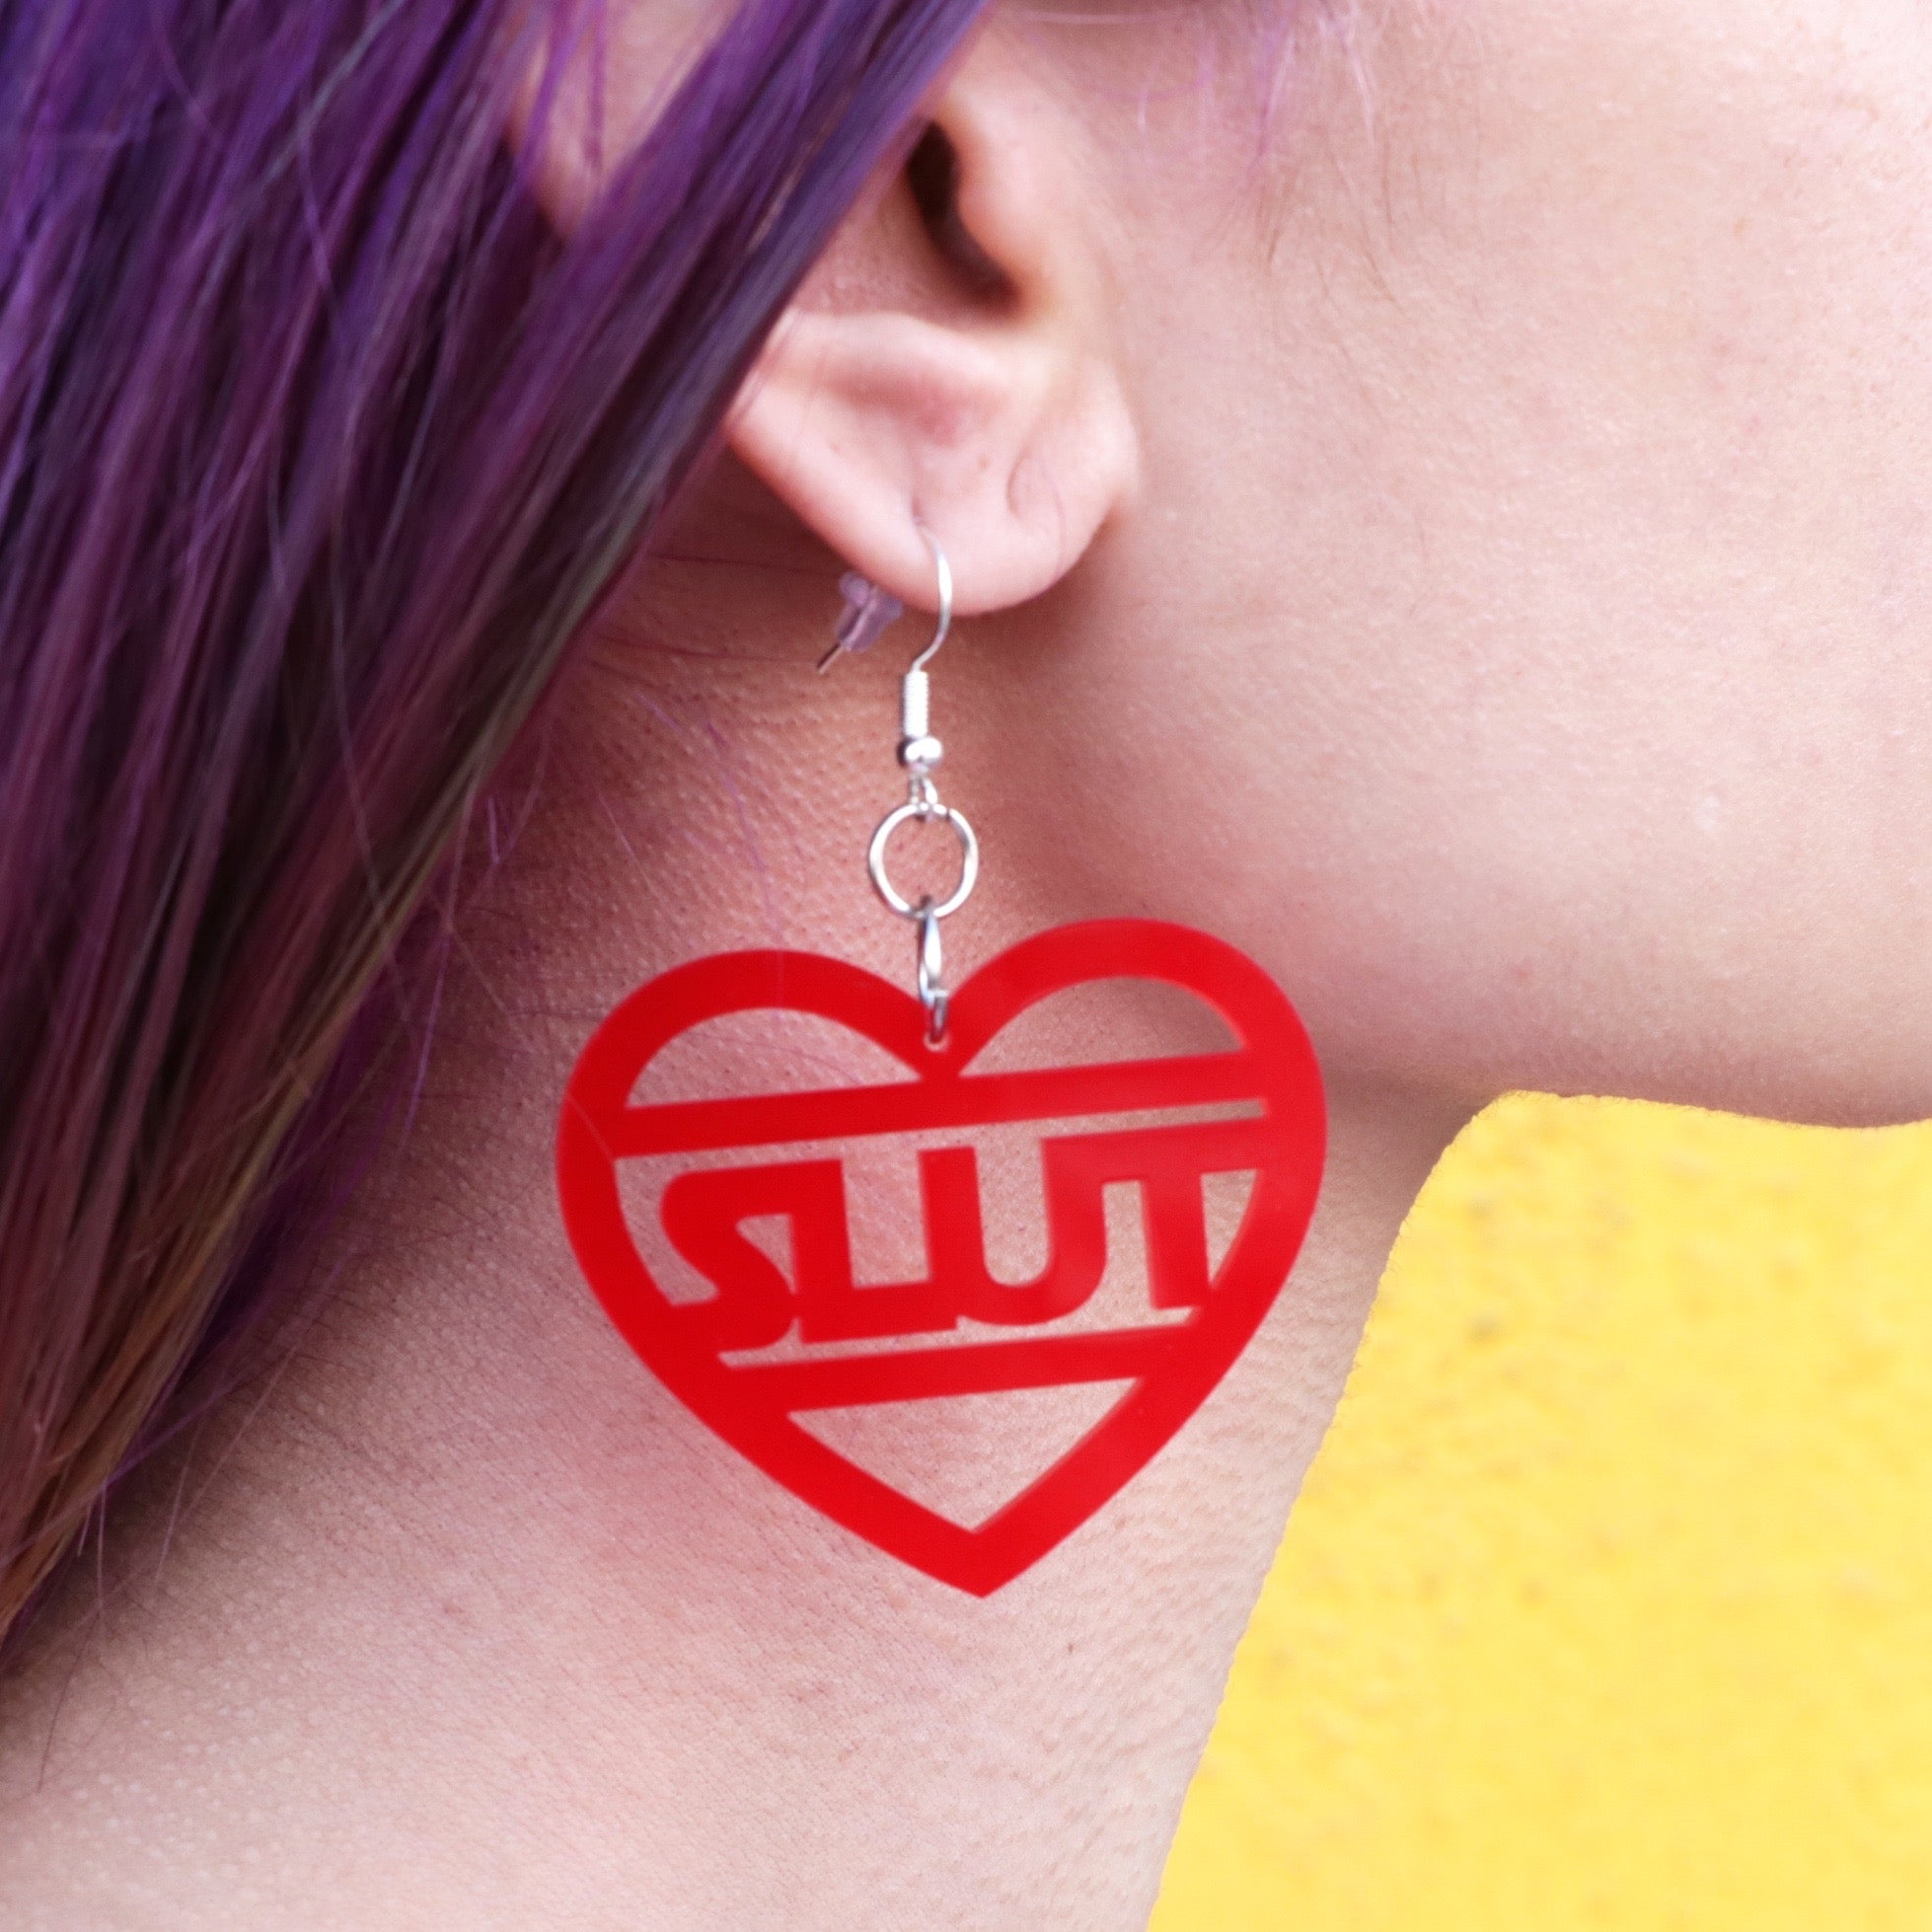 Star Wars Slut Earrings